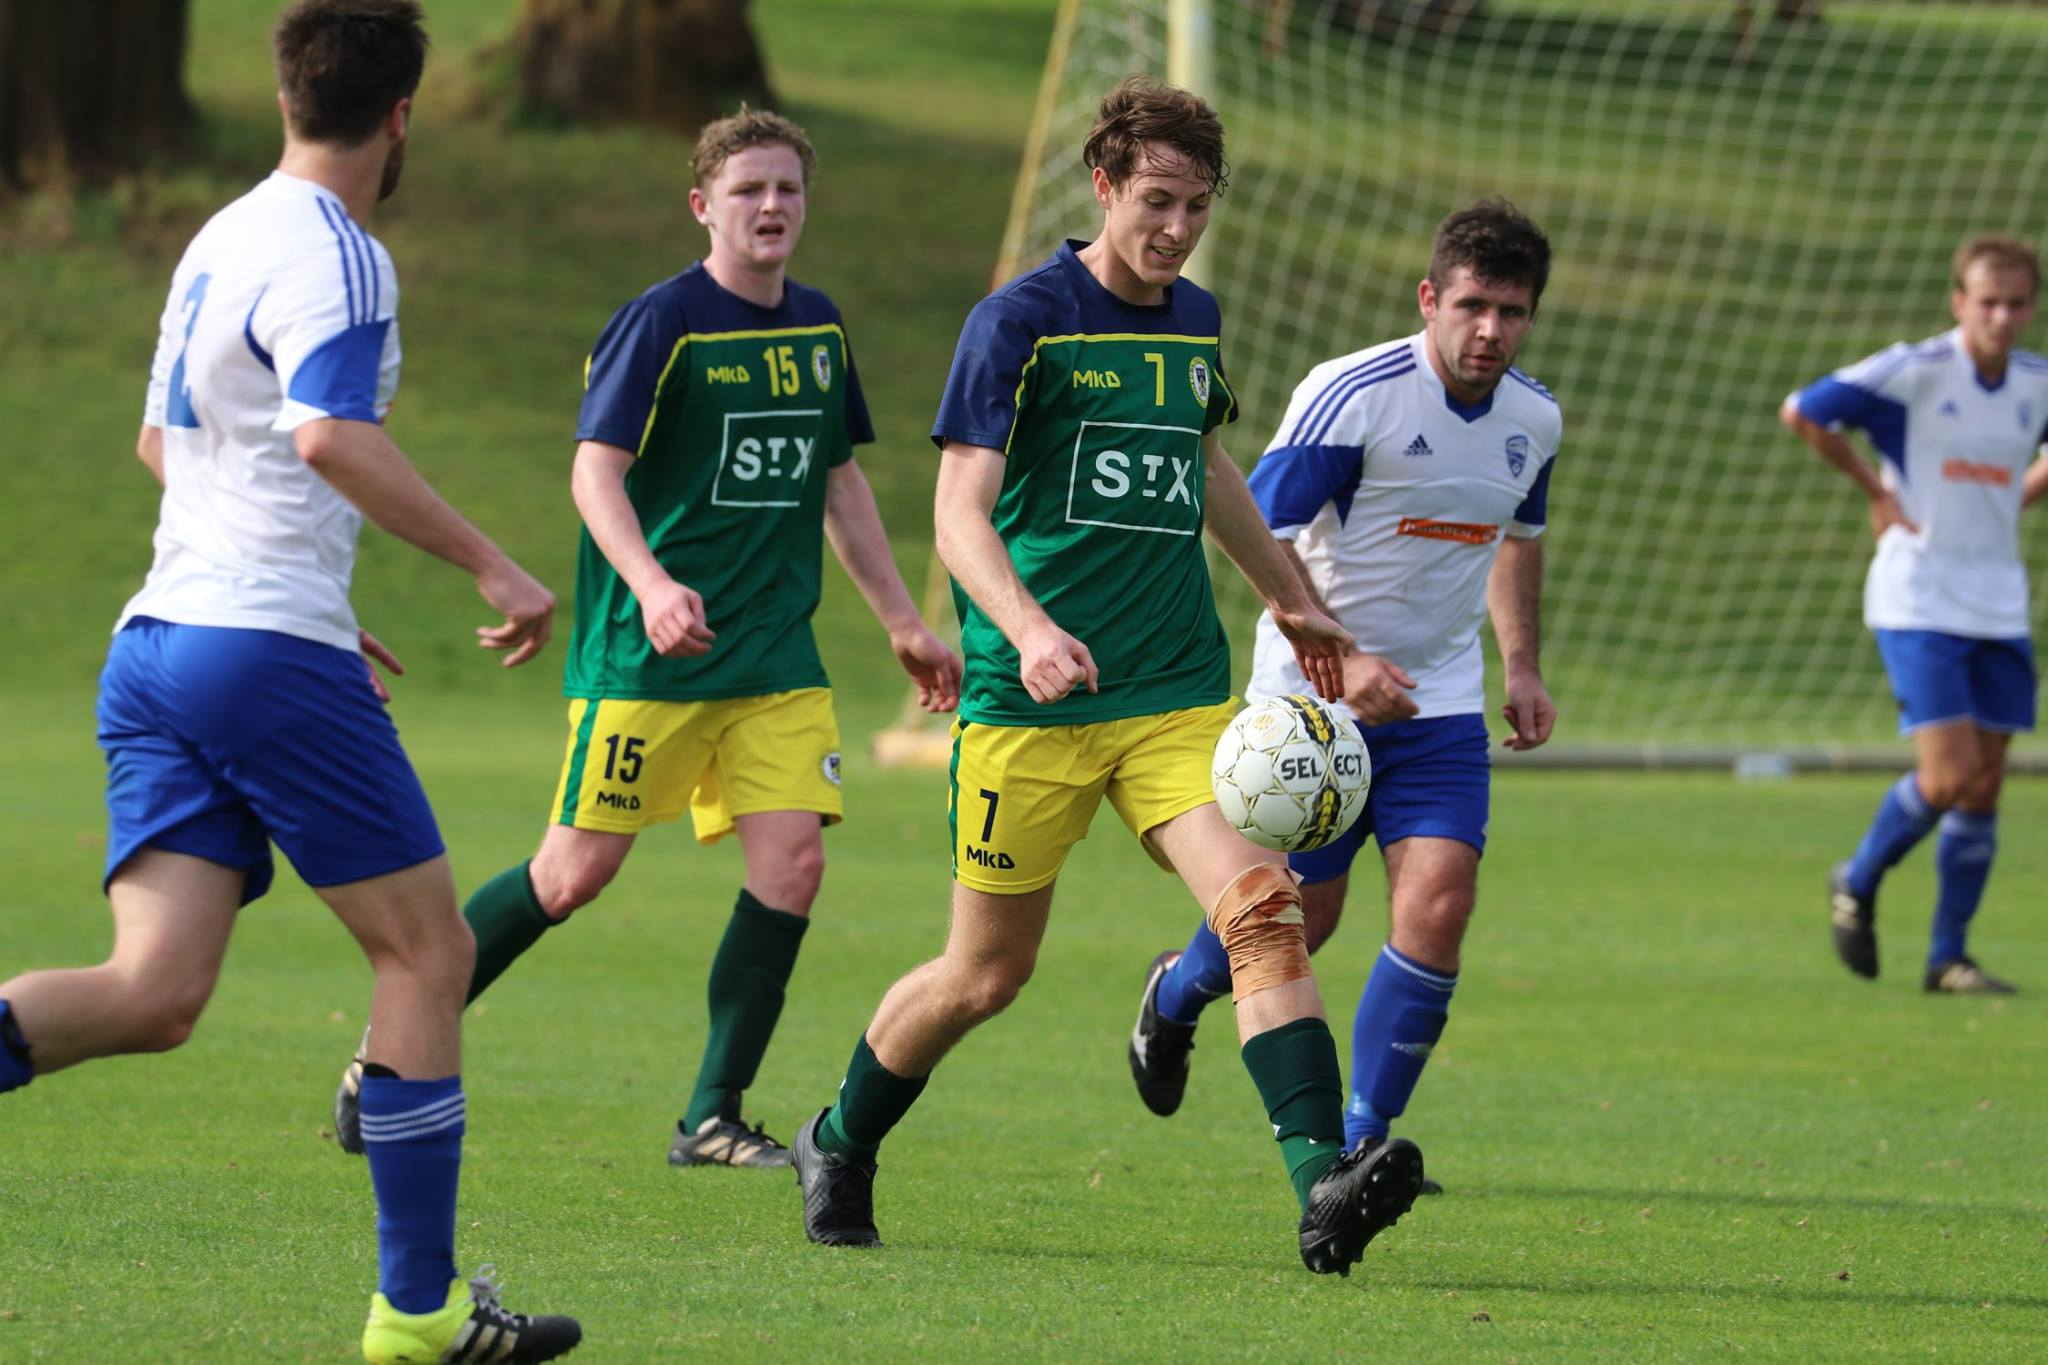 BRYCE CONWAY AND RORY DEVLIN DURING LAST SEASON'S WIN - CREDIT: GABRIELE MALUGA